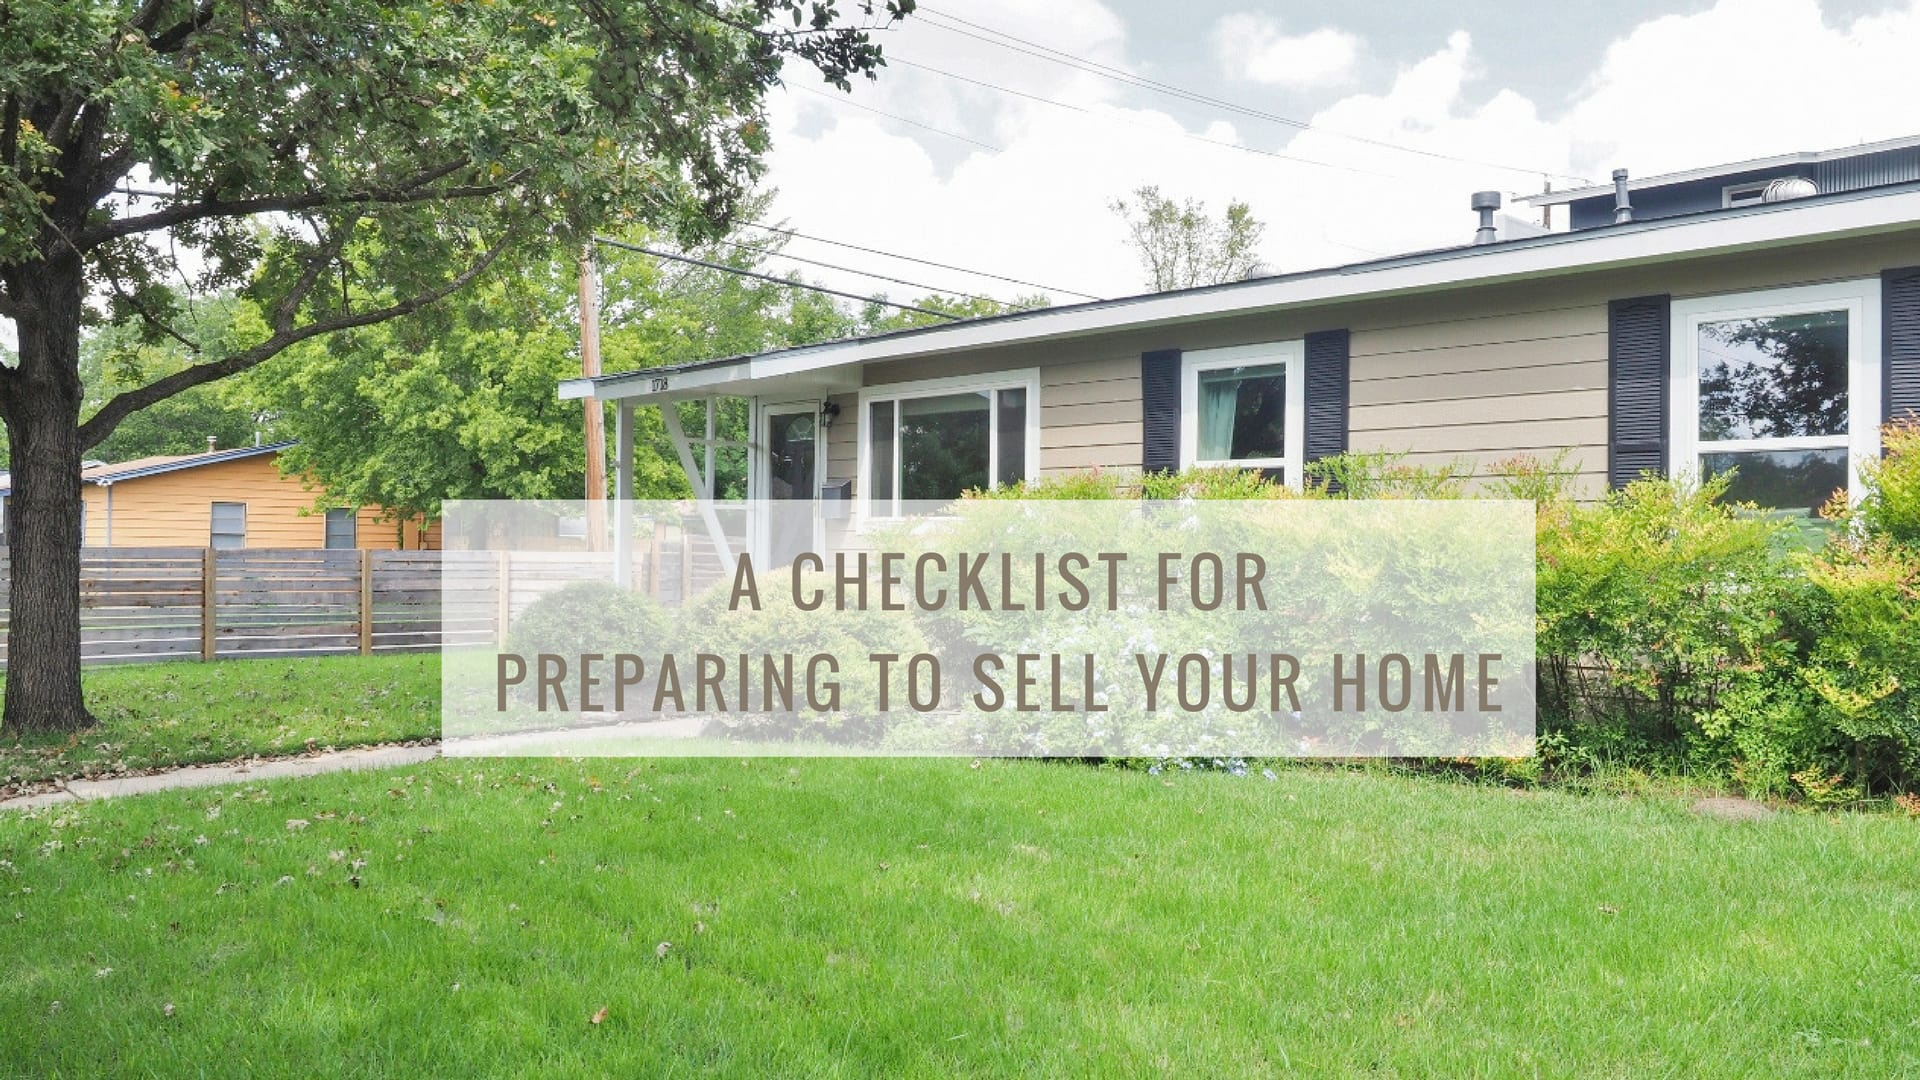 A checklist for preparing to sell your home